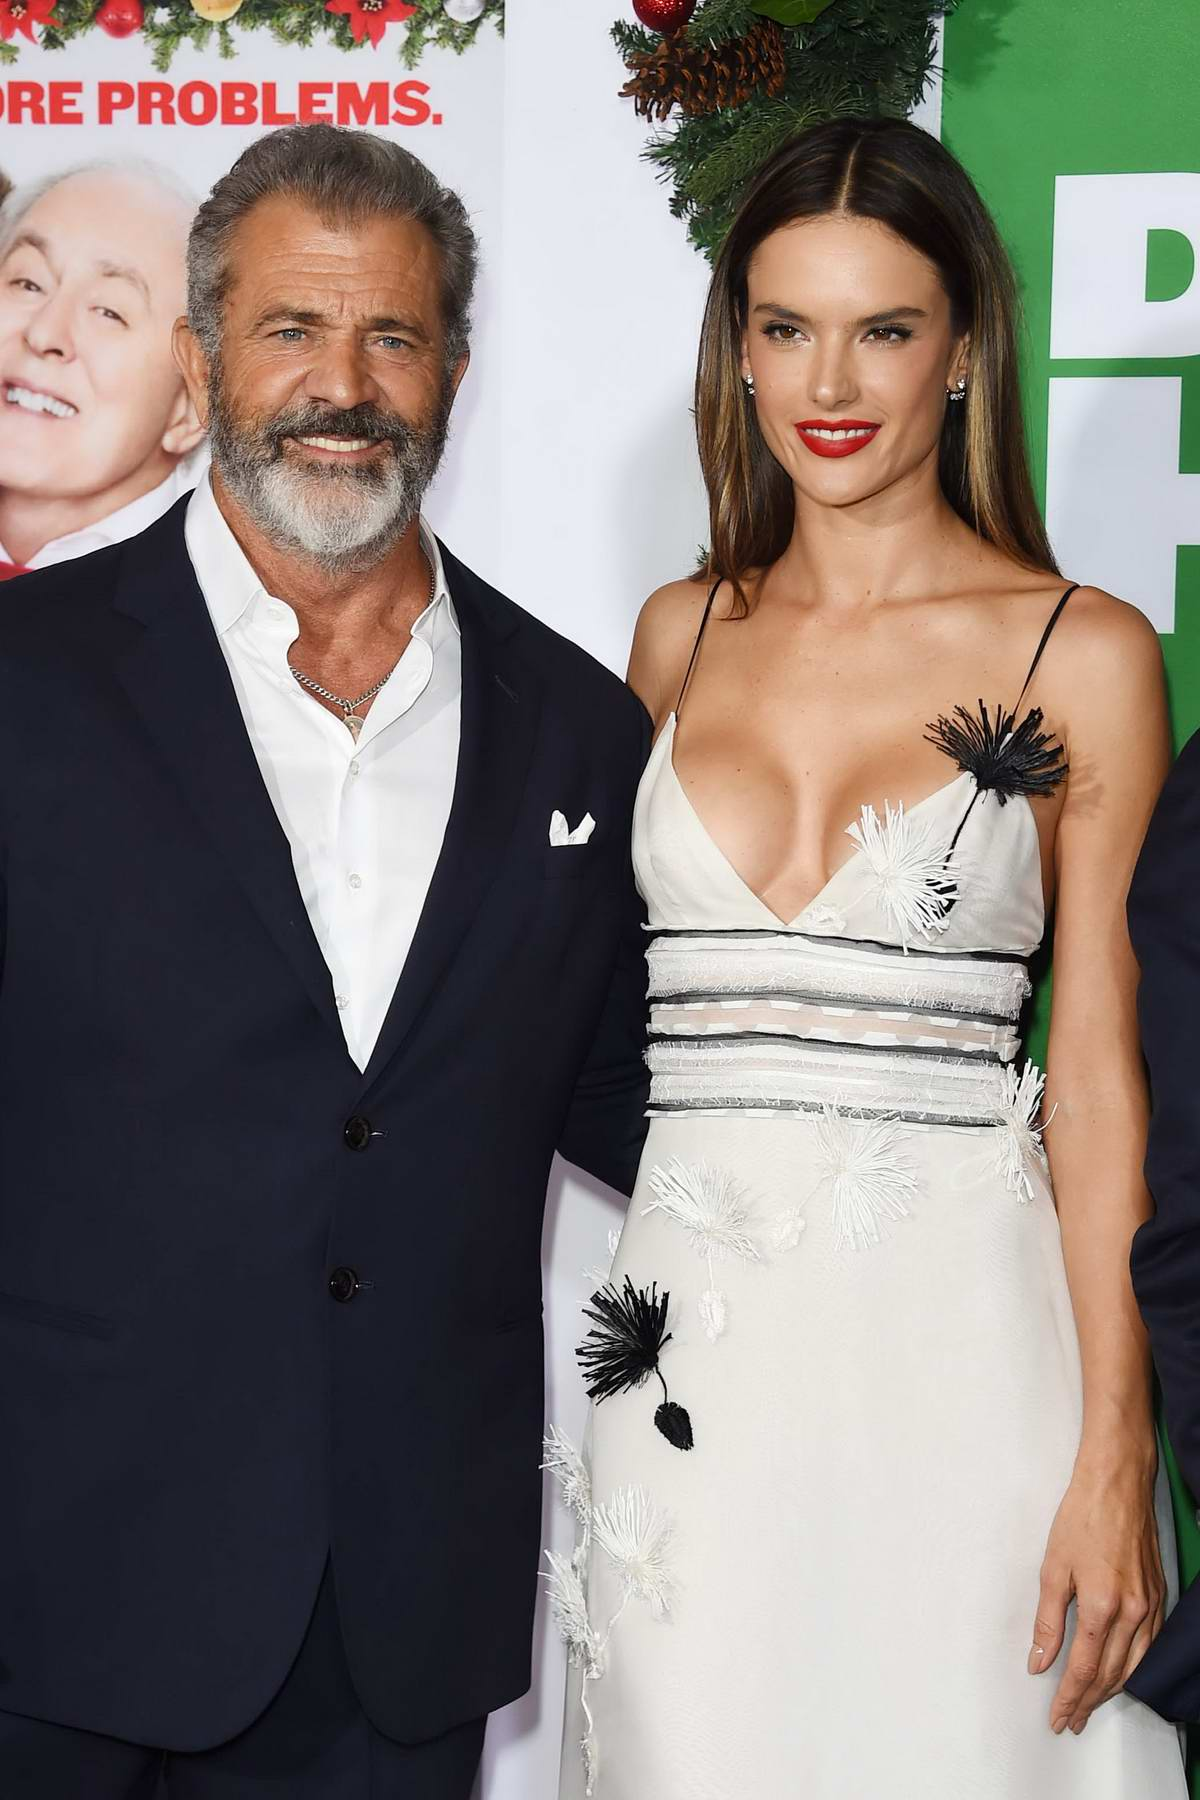 Alessandra Ambrosio at the Los Angeles premiere of Daddy's Home 2 in Westwood, Los Angeles